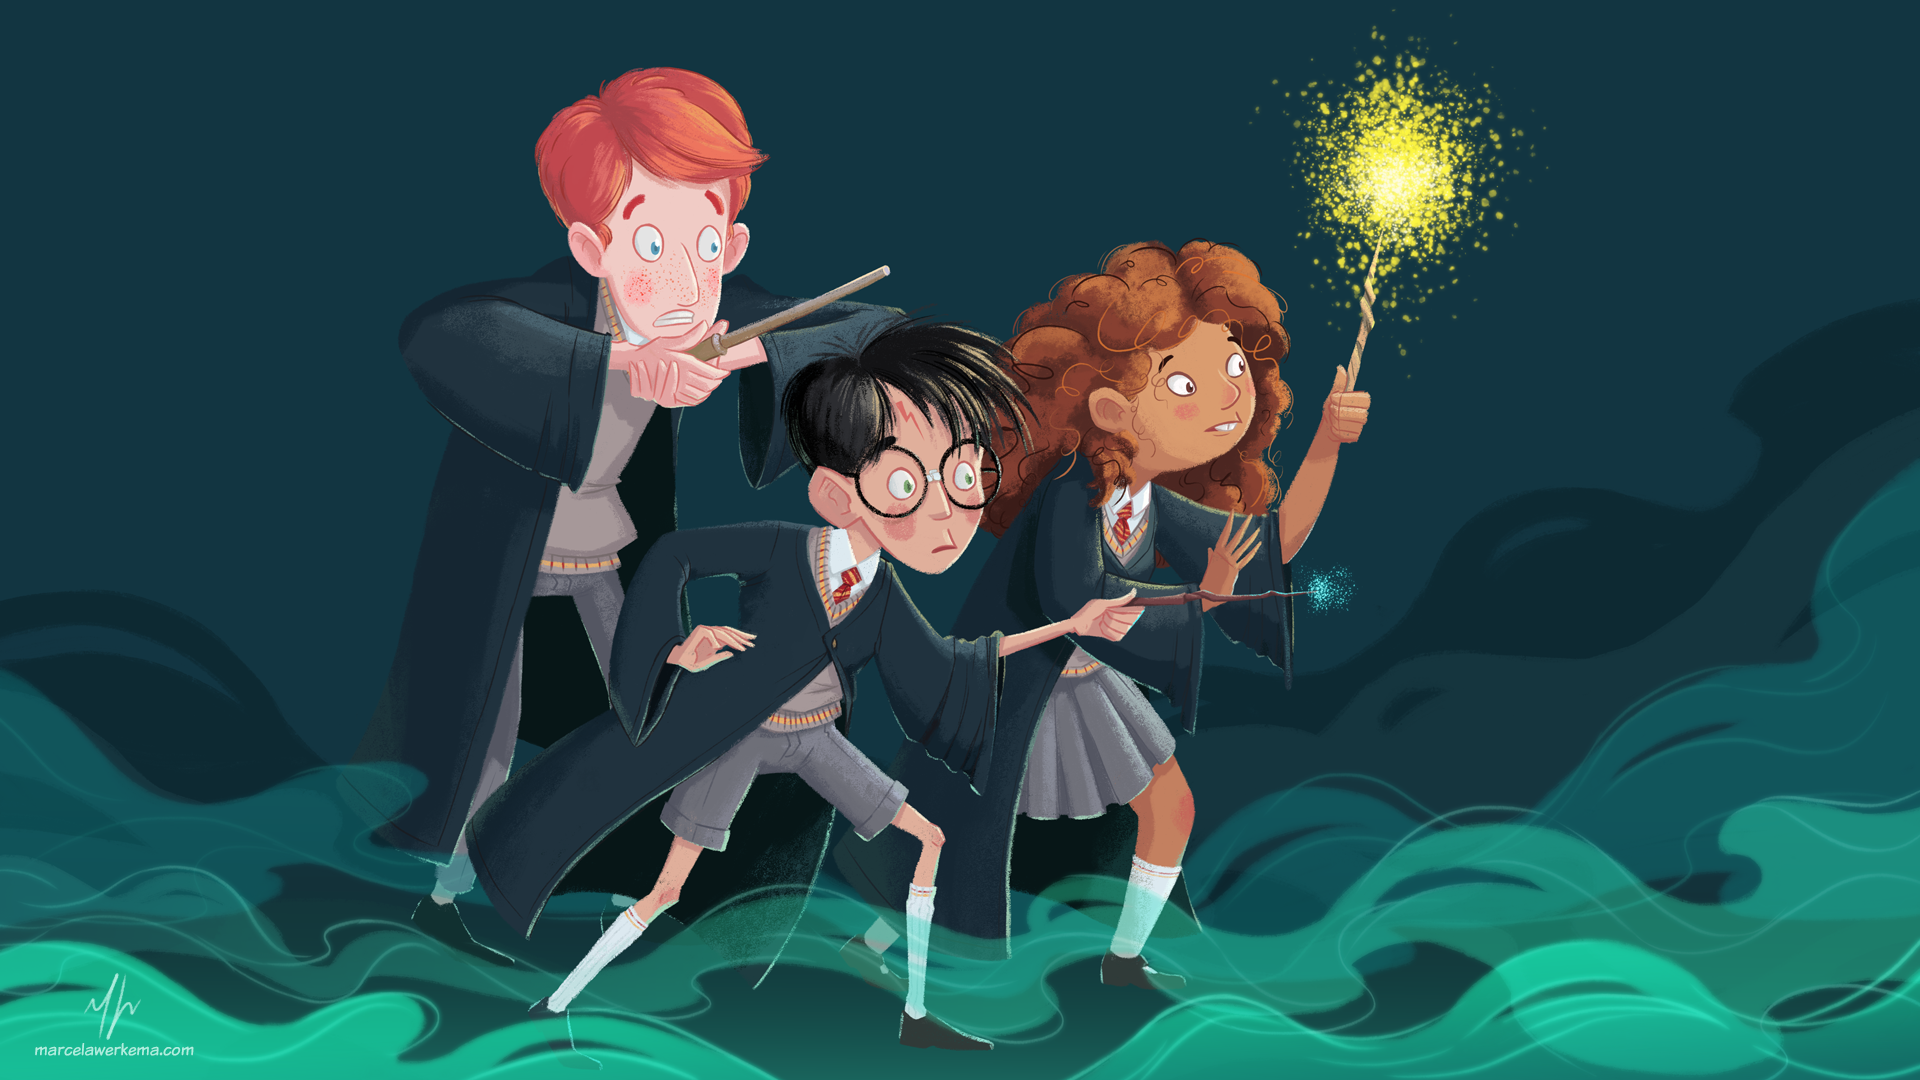 Fanart of Harry Potter